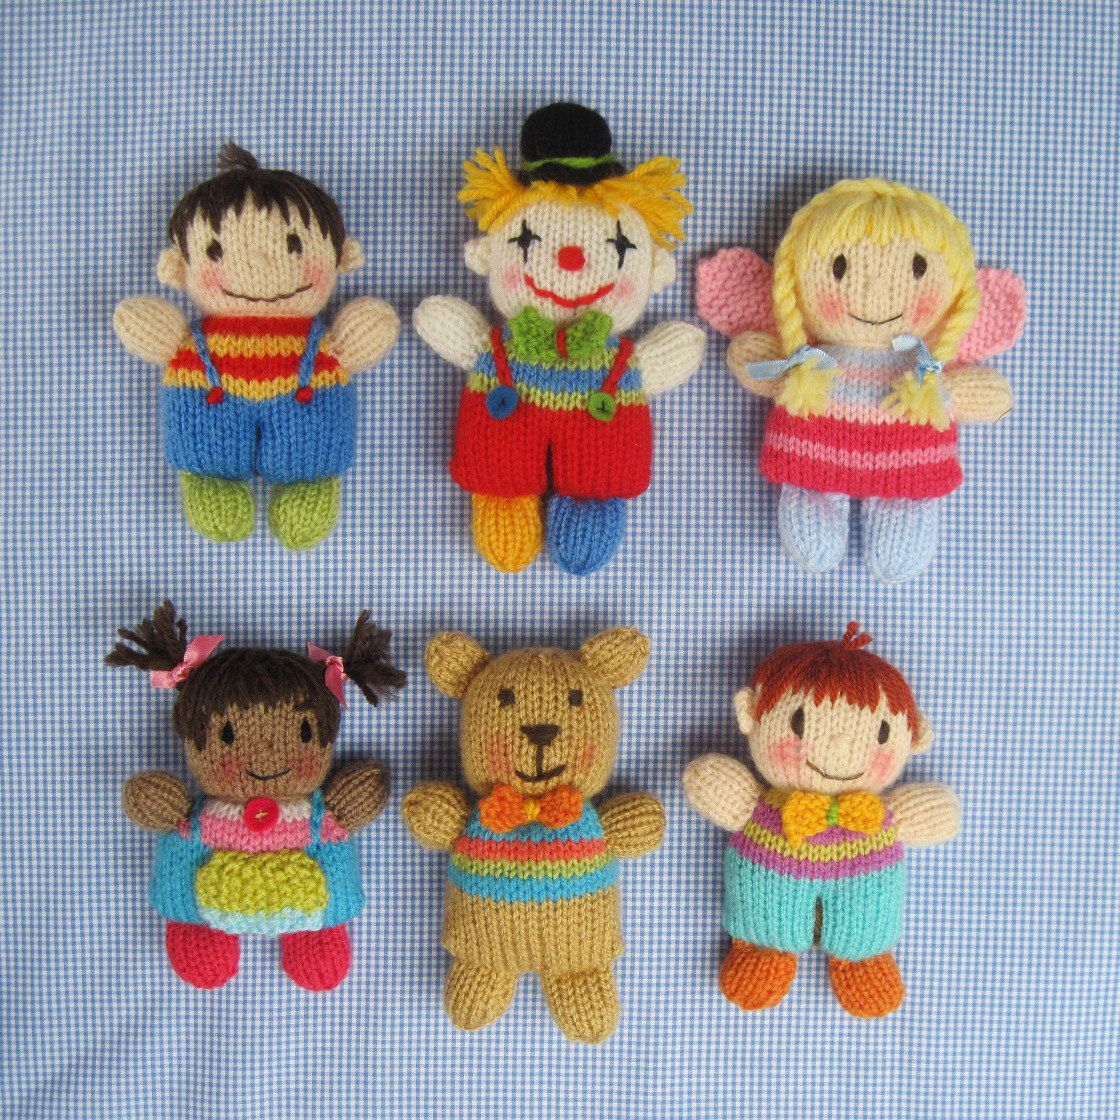 Toyshelf tots toy girls boys fairy clown teddy bear by toyshelf this listing is for a pdf knitting pattern and not for ready made knitted toys toyshelf tots are six happy little characters for you to knit bankloansurffo Gallery